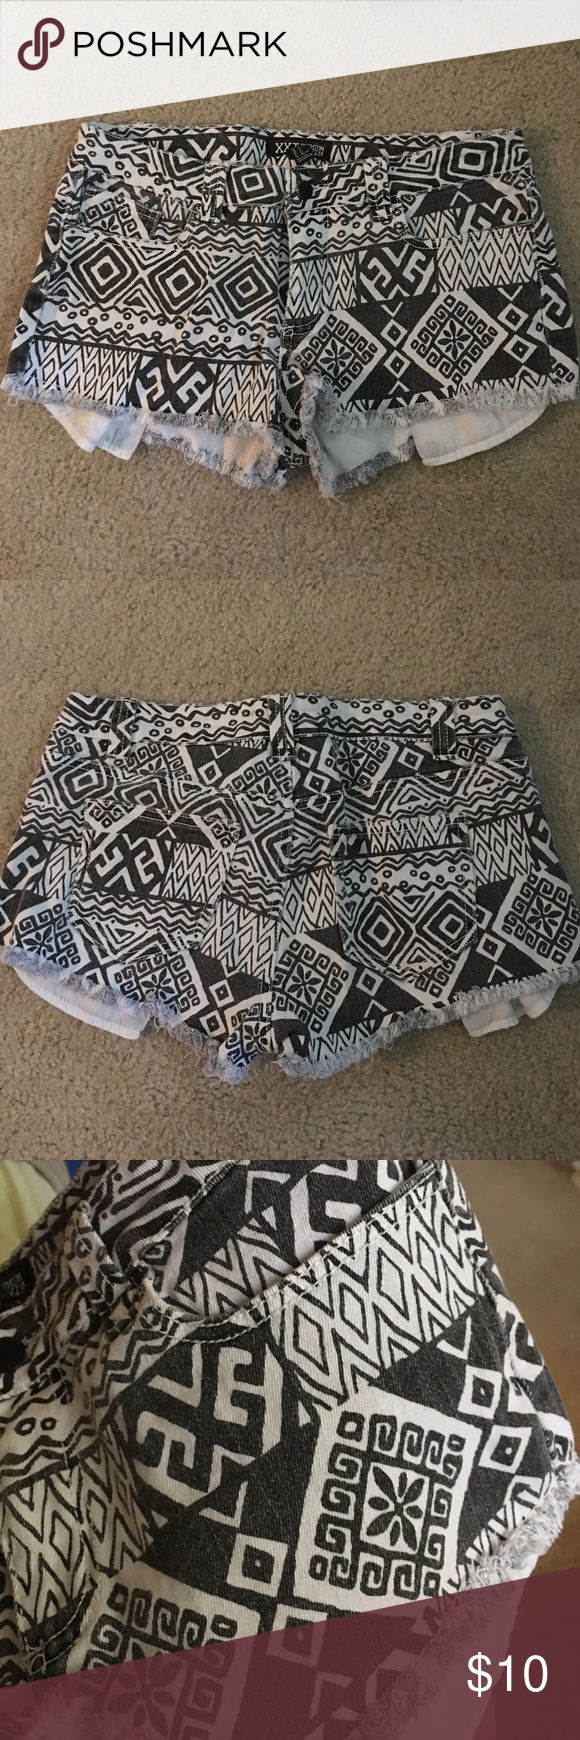 Forever 21 Aztec Print Shorts - SIZE 29 W Aztec print jean shorts with exposed front pockets! black/white Aztec pattern, frayed, white pockets exposed. In perfect condition! 98% cotton, 2% spandex. Forever 21 Shorts Jean Shorts